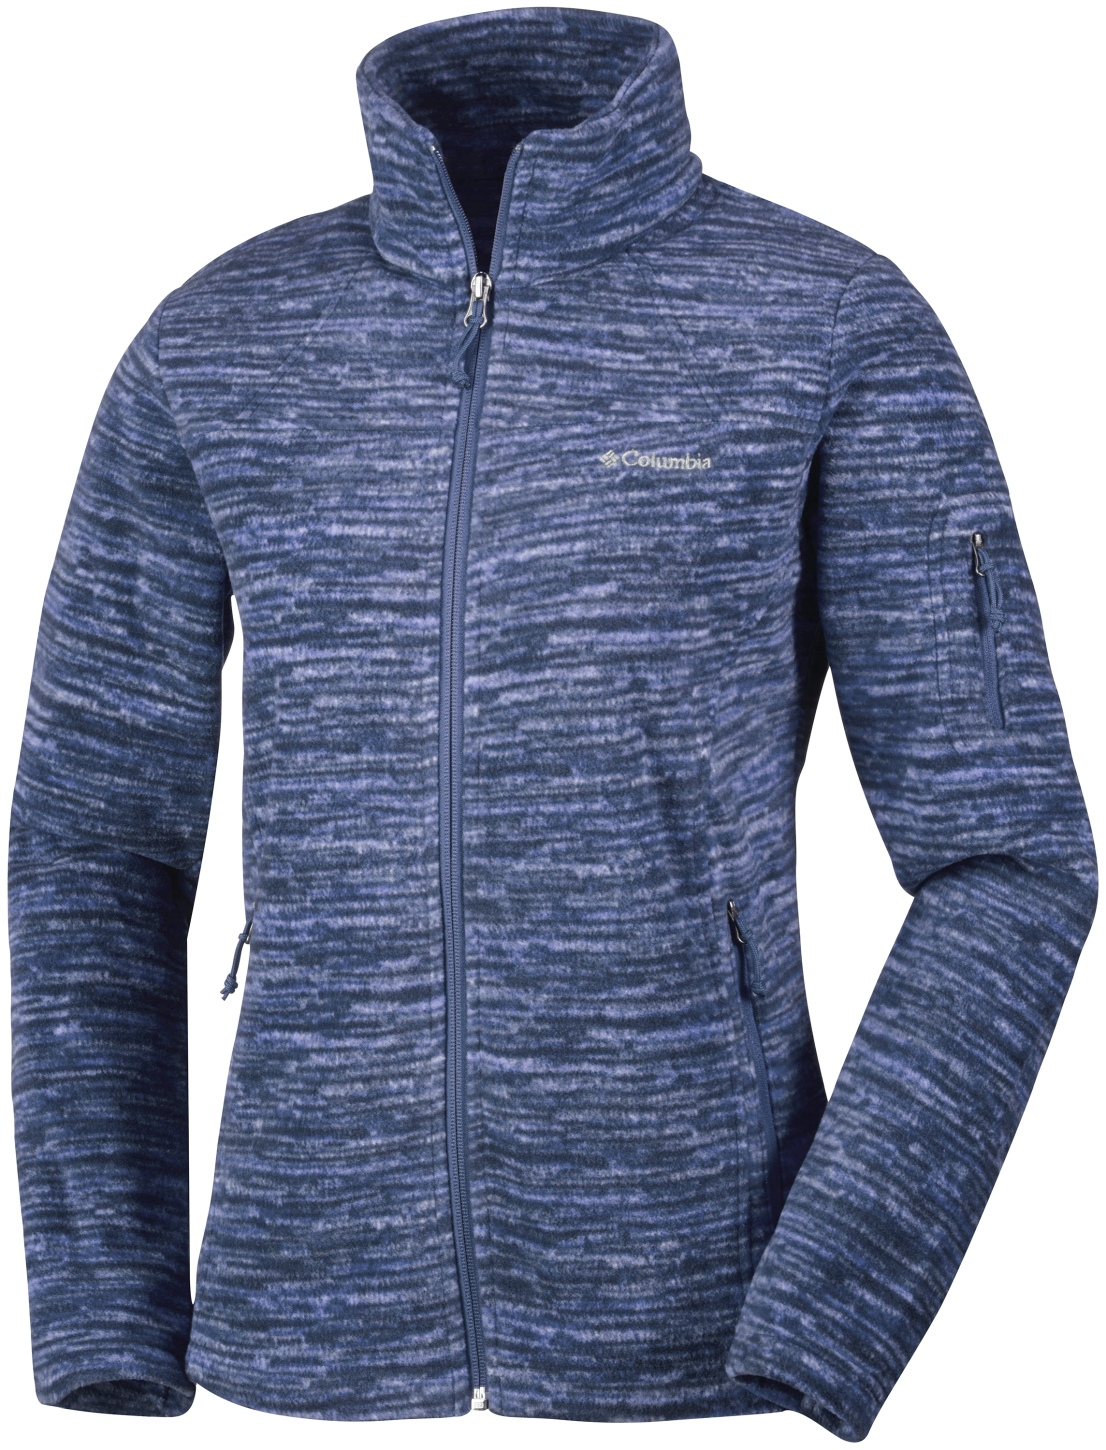 Columbia Women's Fast Trek Printed Jacket Bluebell Strata-30